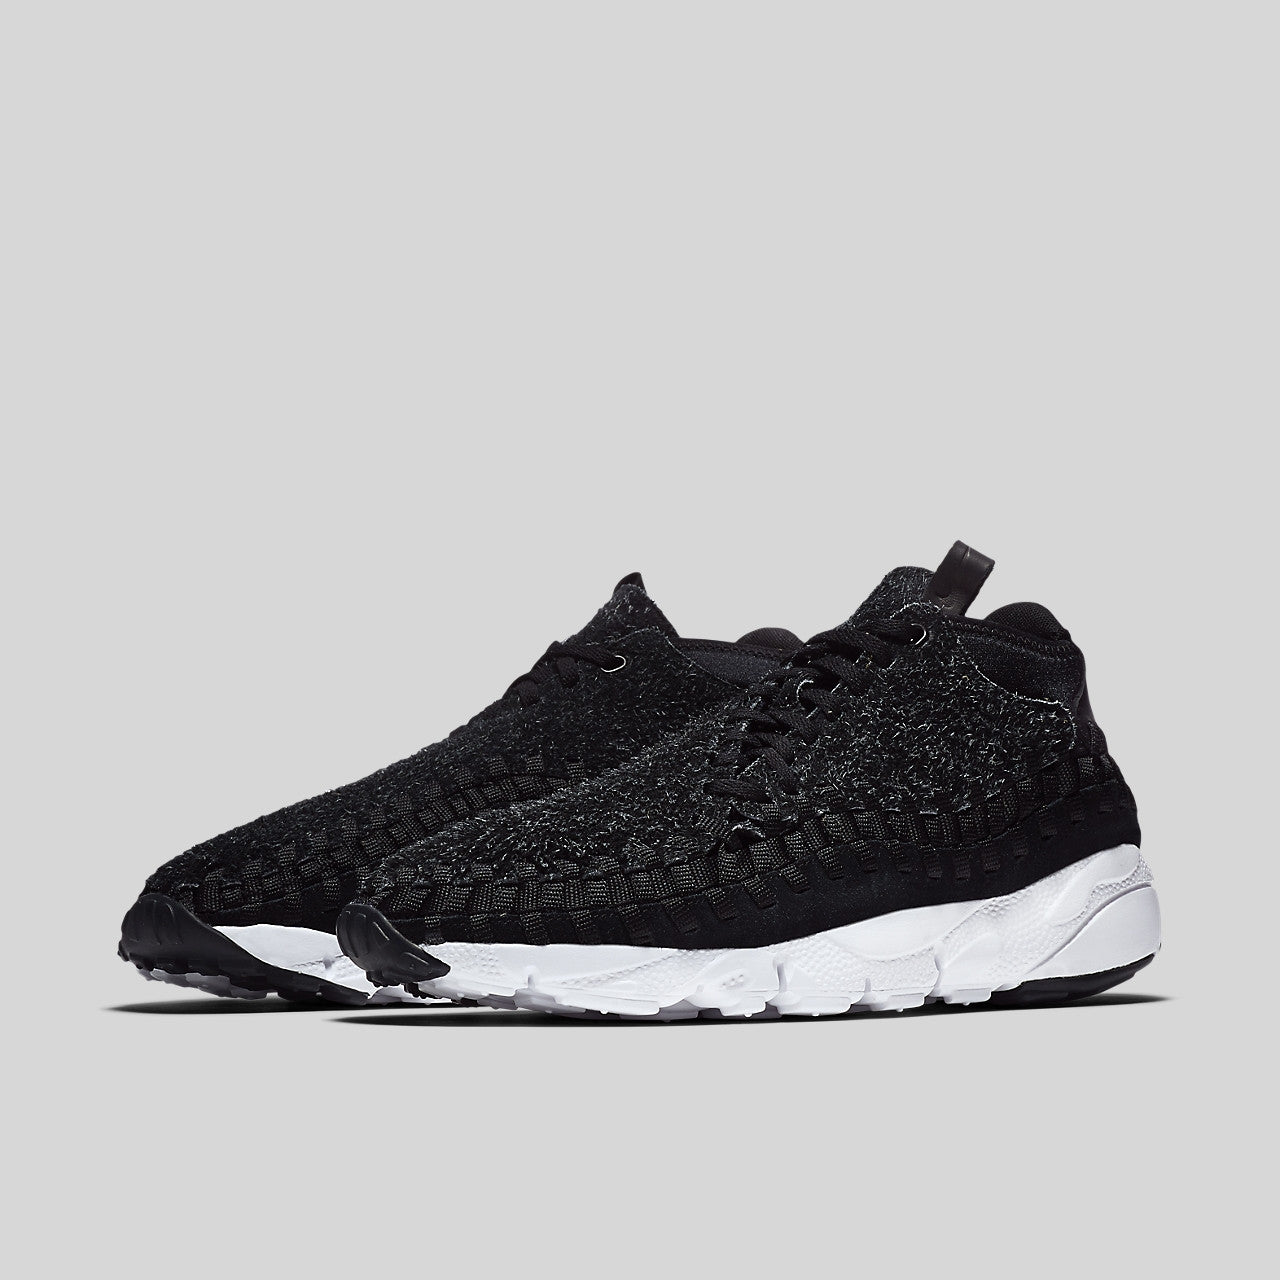 47a0d67900e6 Nike Air Footscape Woven Chukka QS Hairy Suede Black Anthracite White